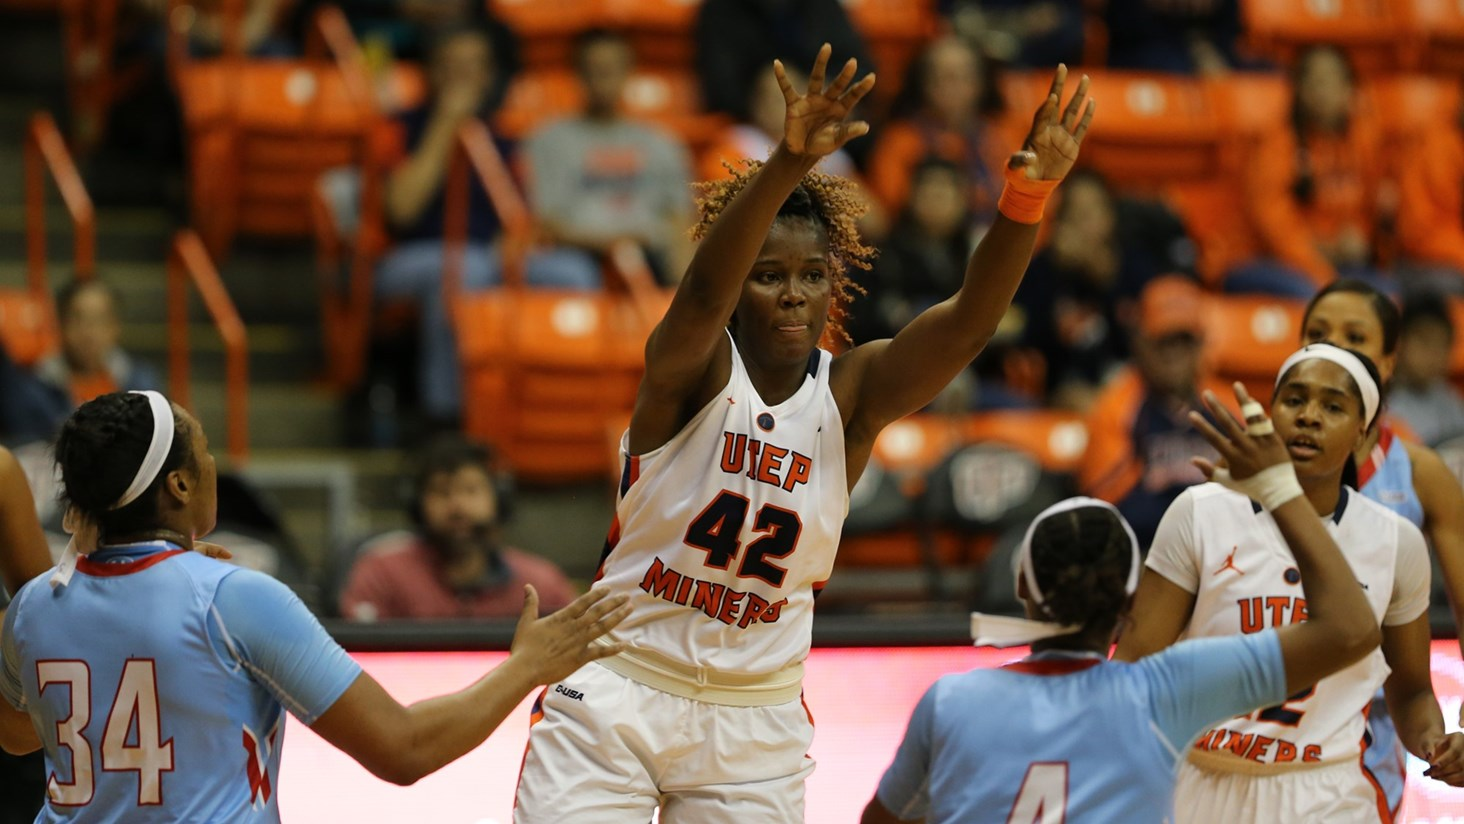 UTEP Women's Basketball To Host Sul Ross State In Exhibition Contest Sunday